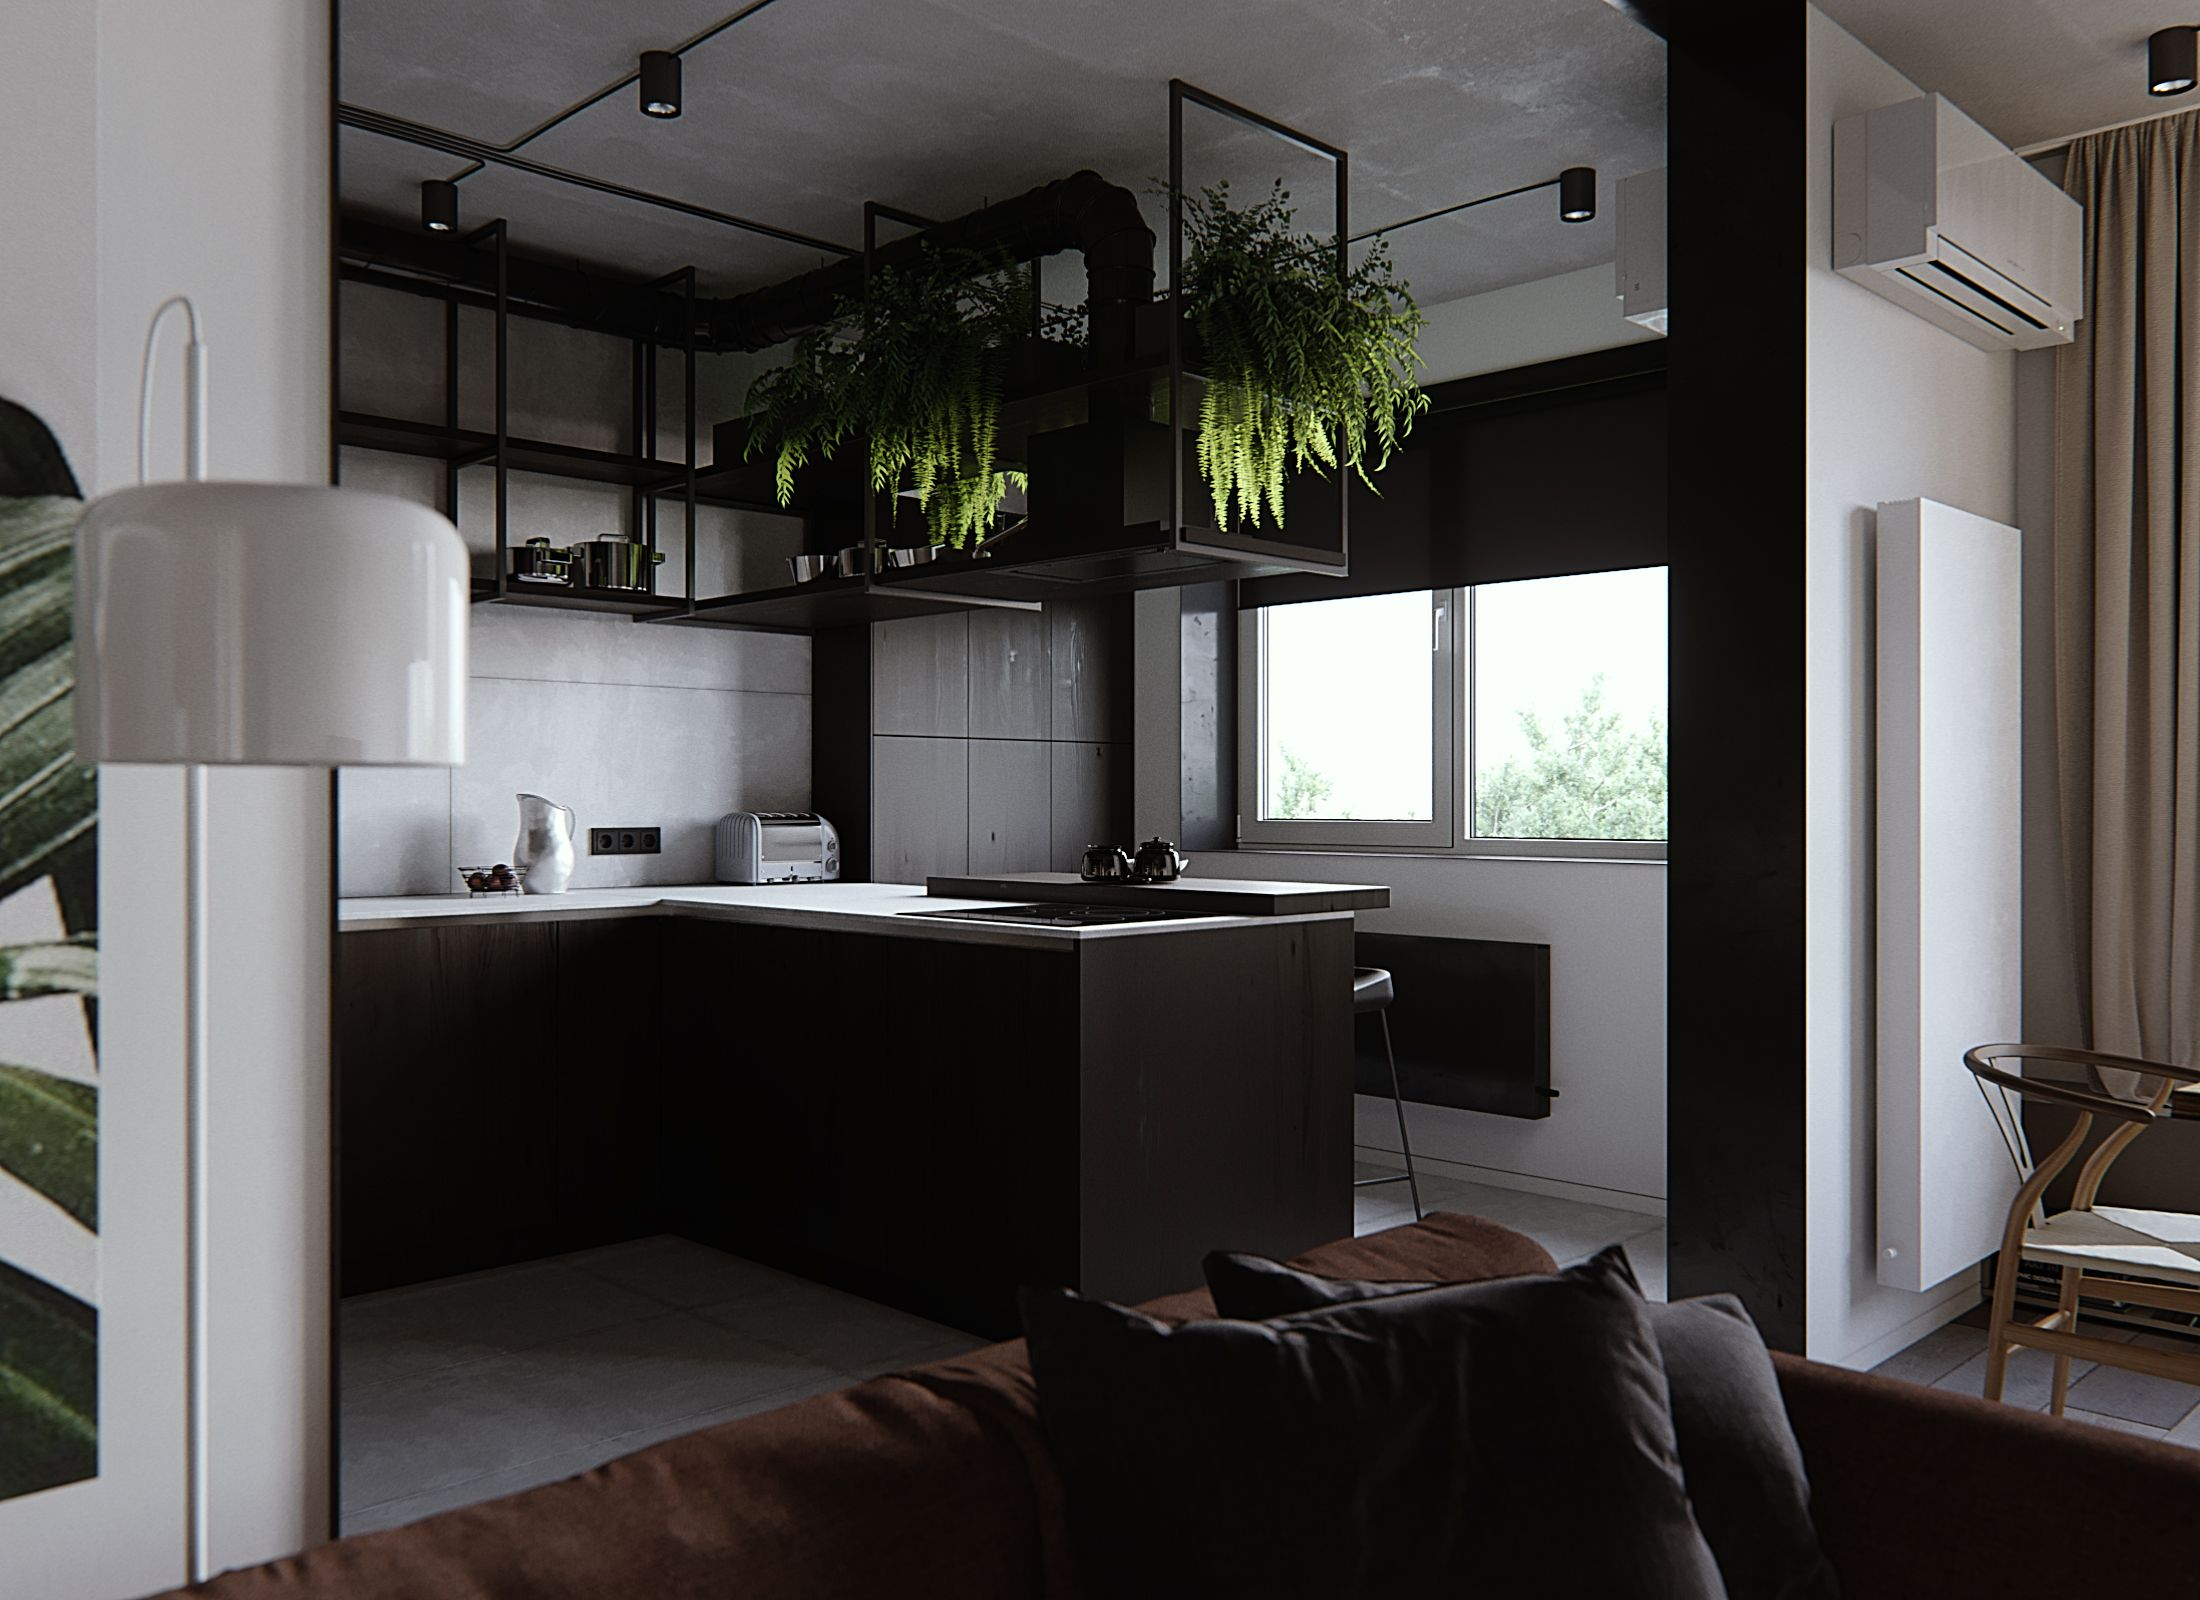 Sarah Living Room Kitchen White Black Wood Concrete Maroon Green Brown Plants Brown Living Room Decor 1st Apartment Brown Living Room